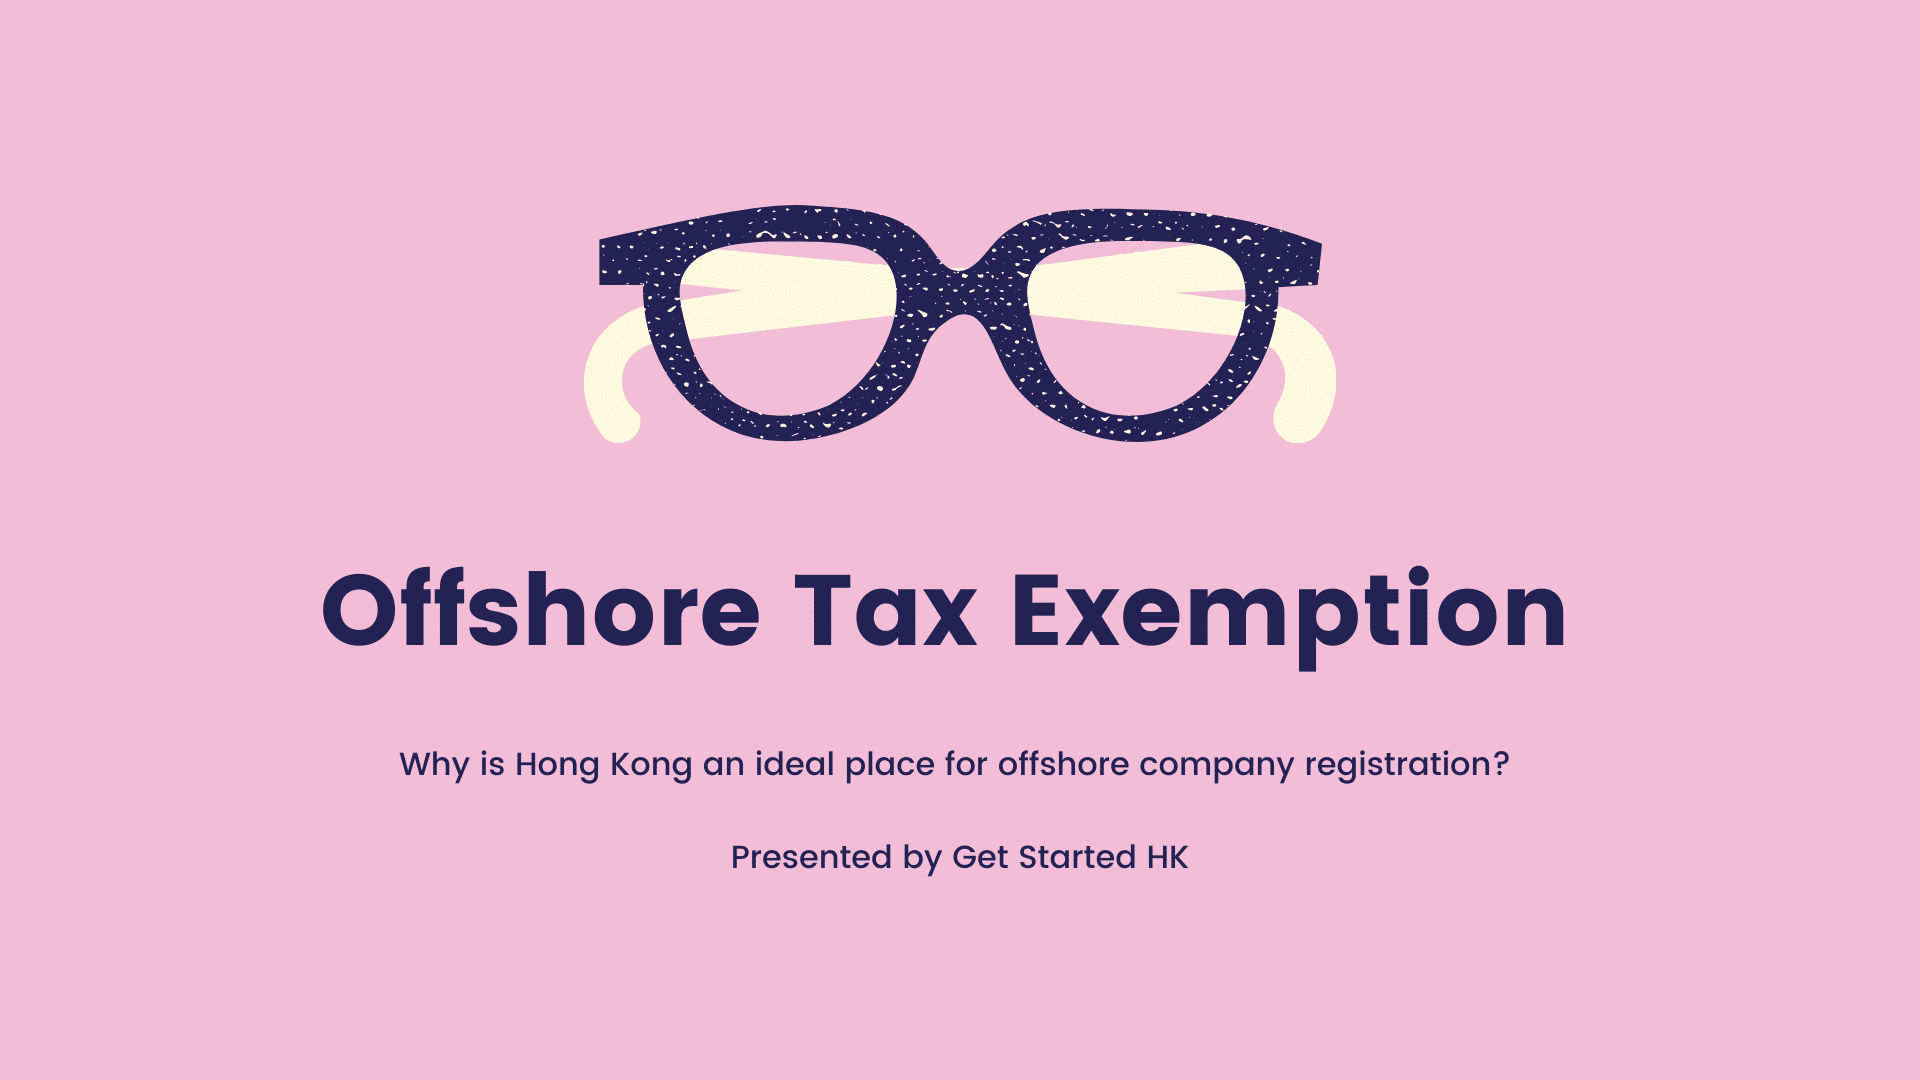 Offshore Tax Exemption in Hong Kong